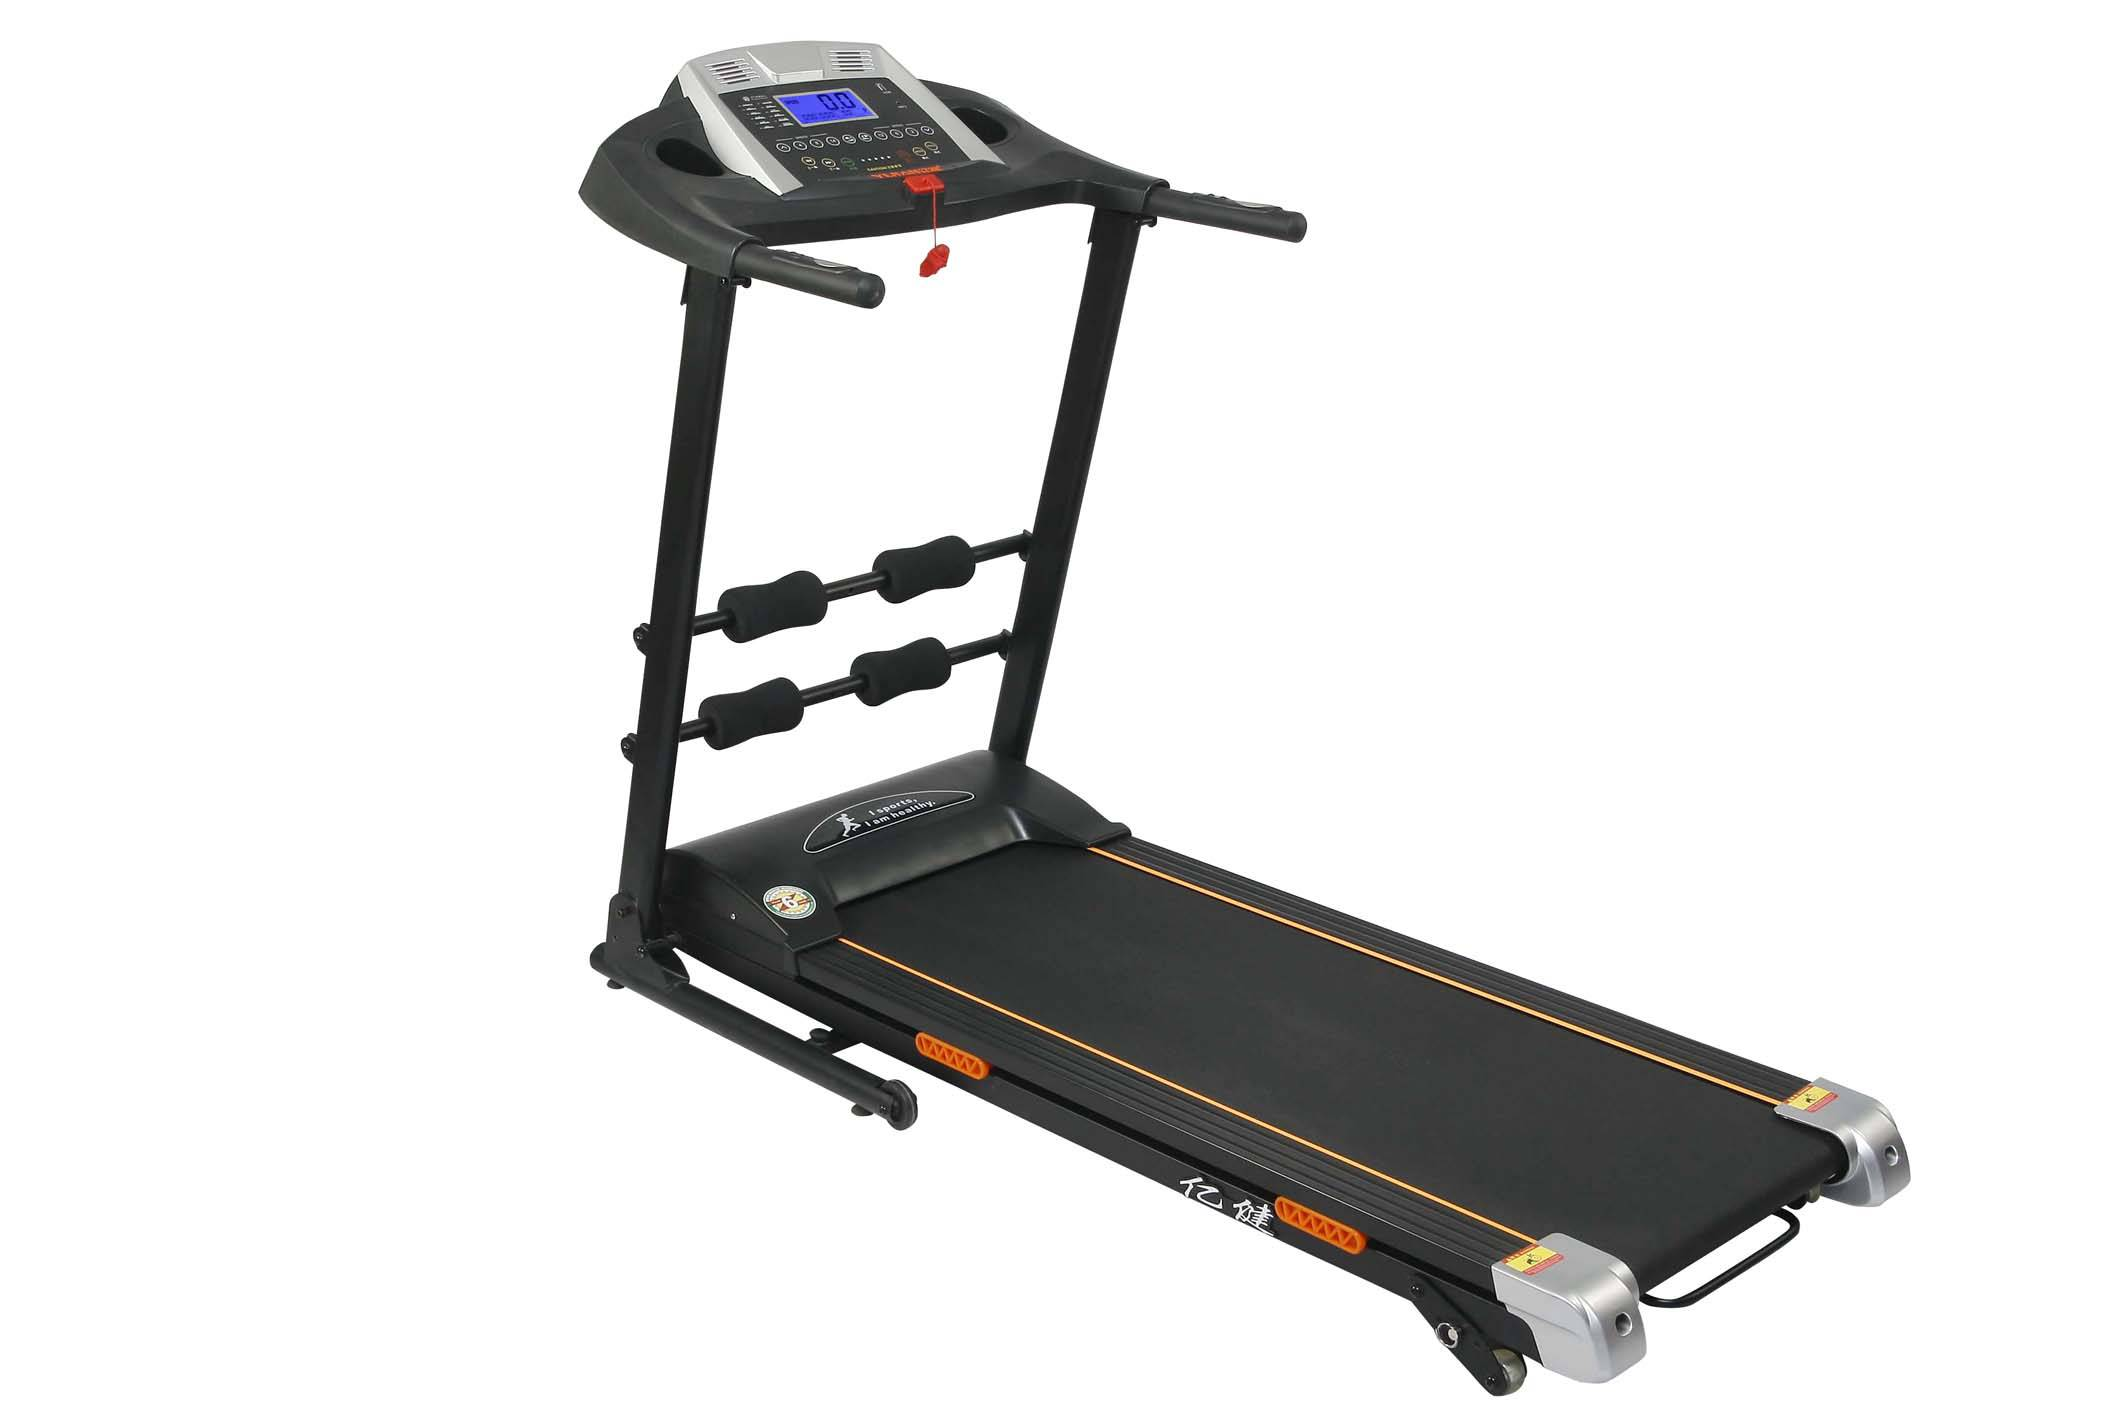 2015 New Design Motorized Treadmill DK-07